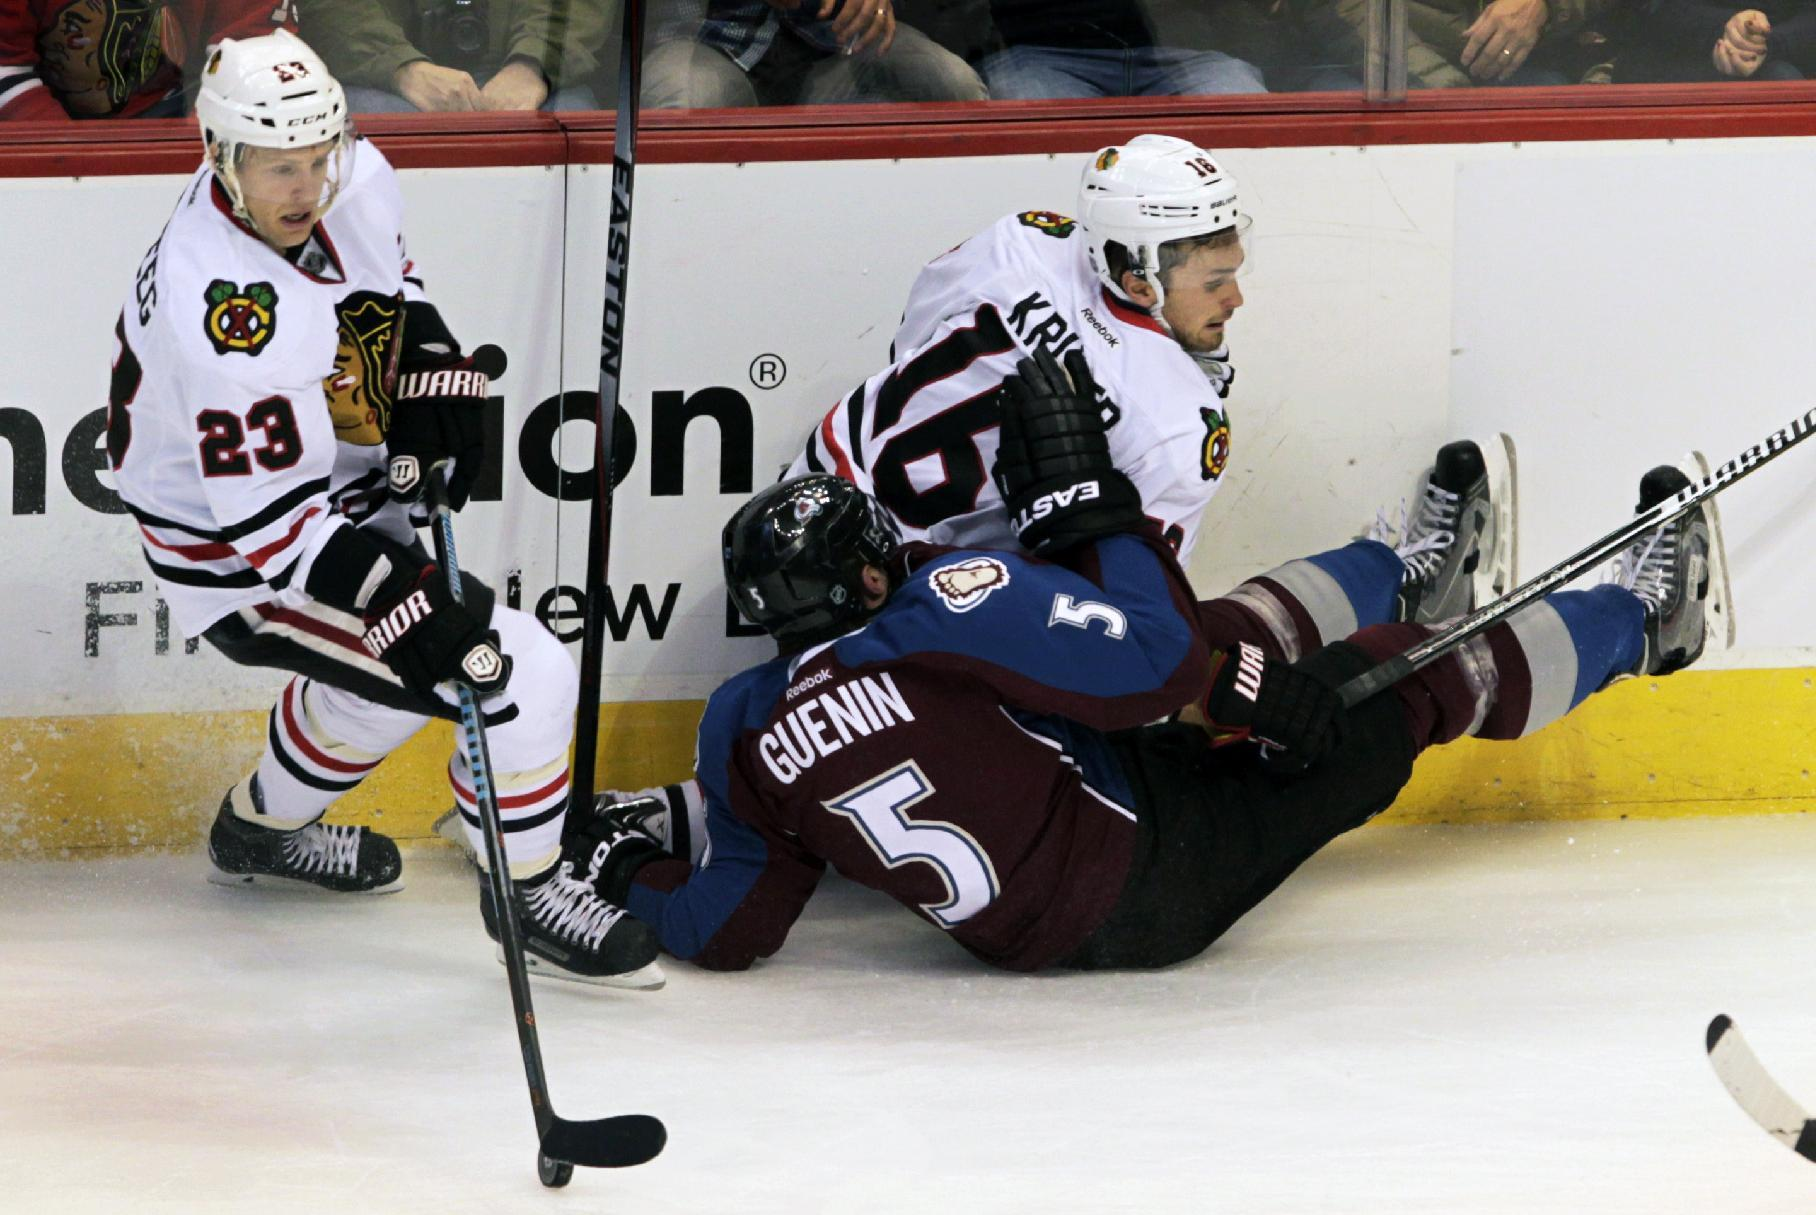 Kane helps Blackhawks to 5-2 win over Avs